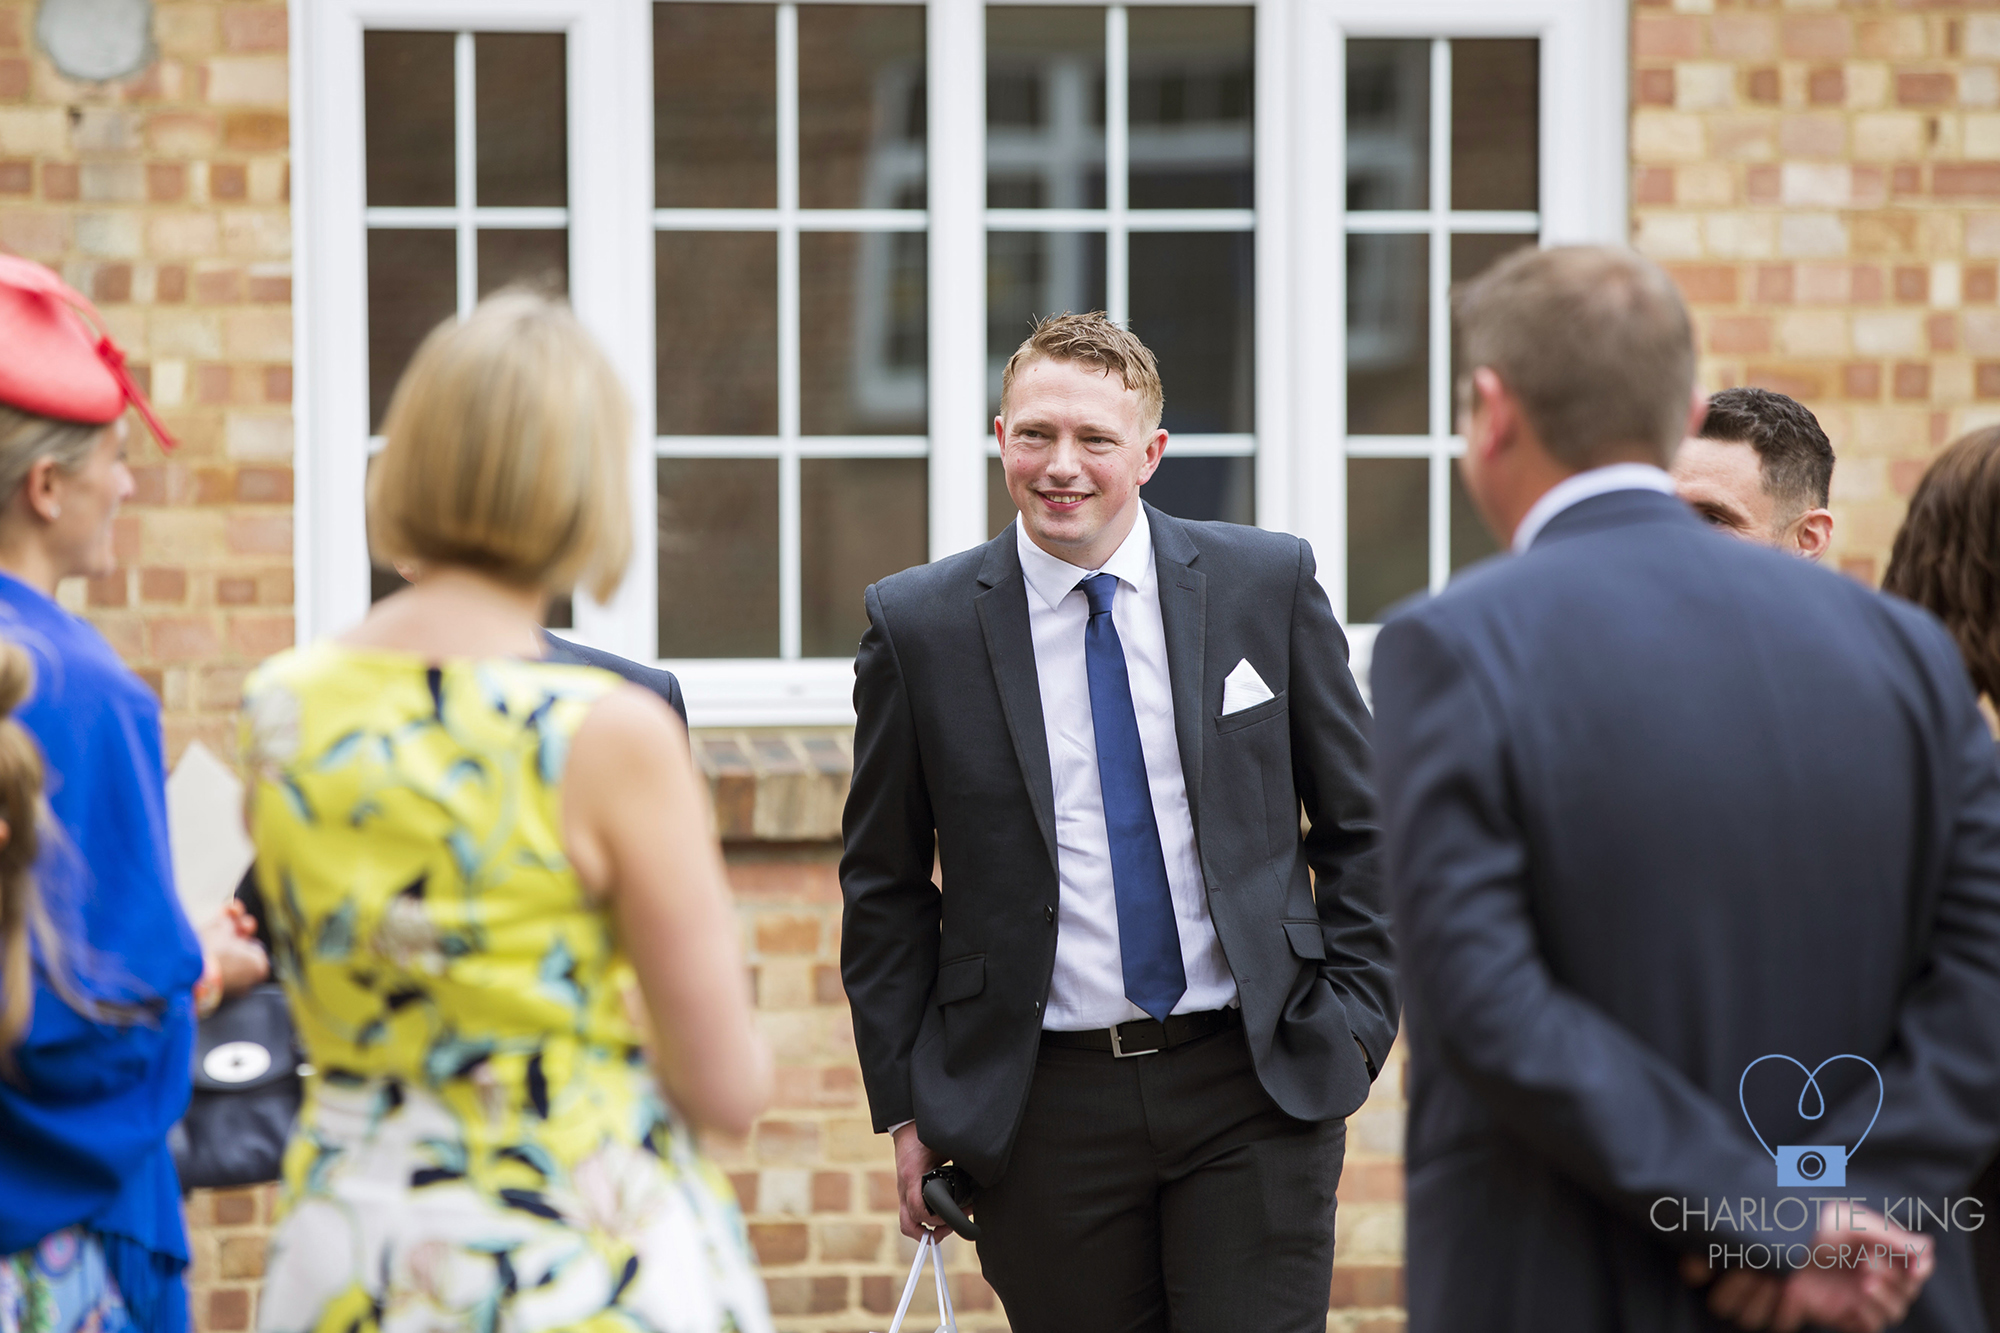 Woldingham-school-wedding-charlotte-king-photography (11)